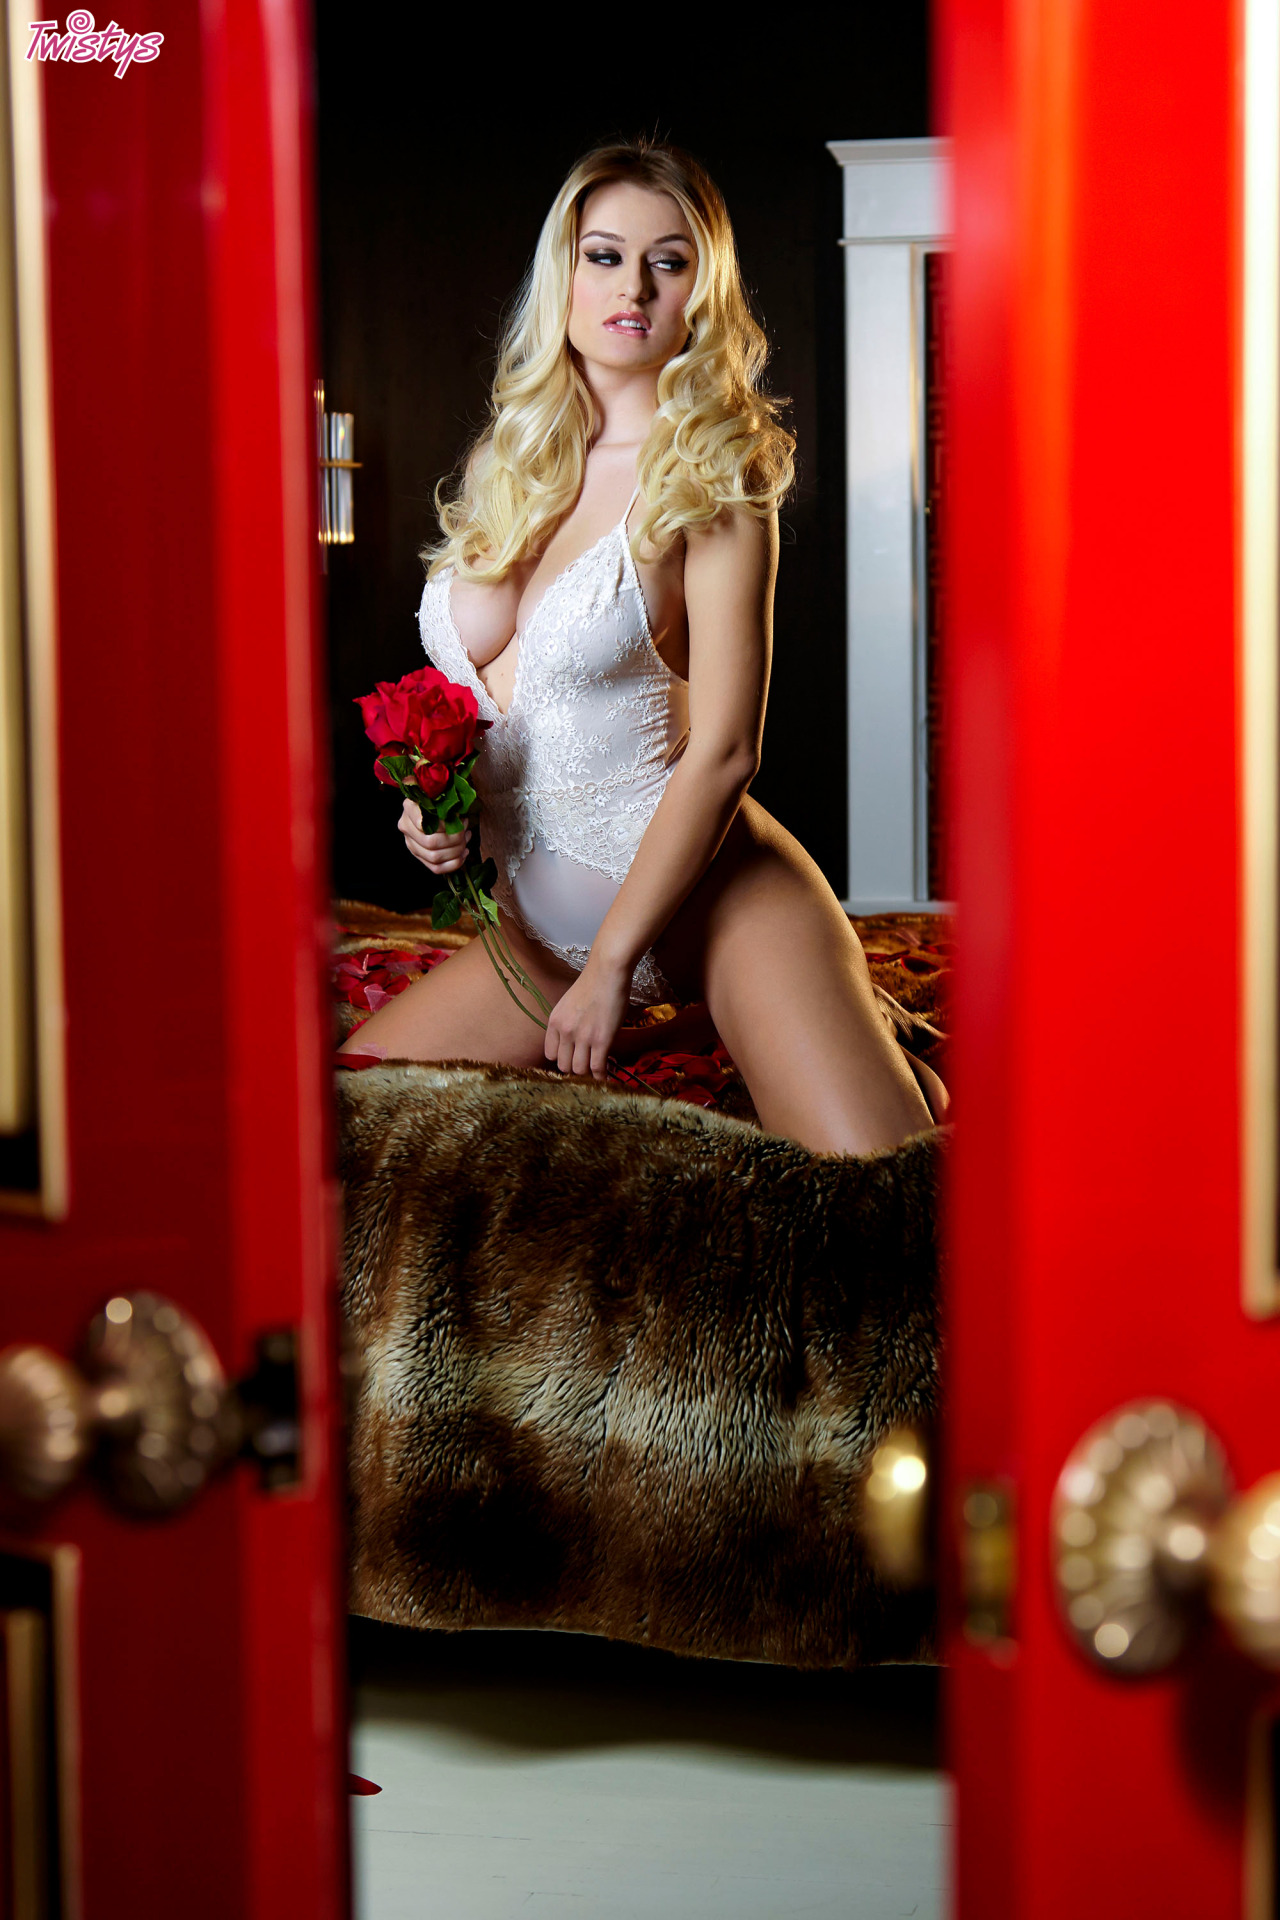 Happy Valentine's Day Natalia Starr Shot For Twistys 9